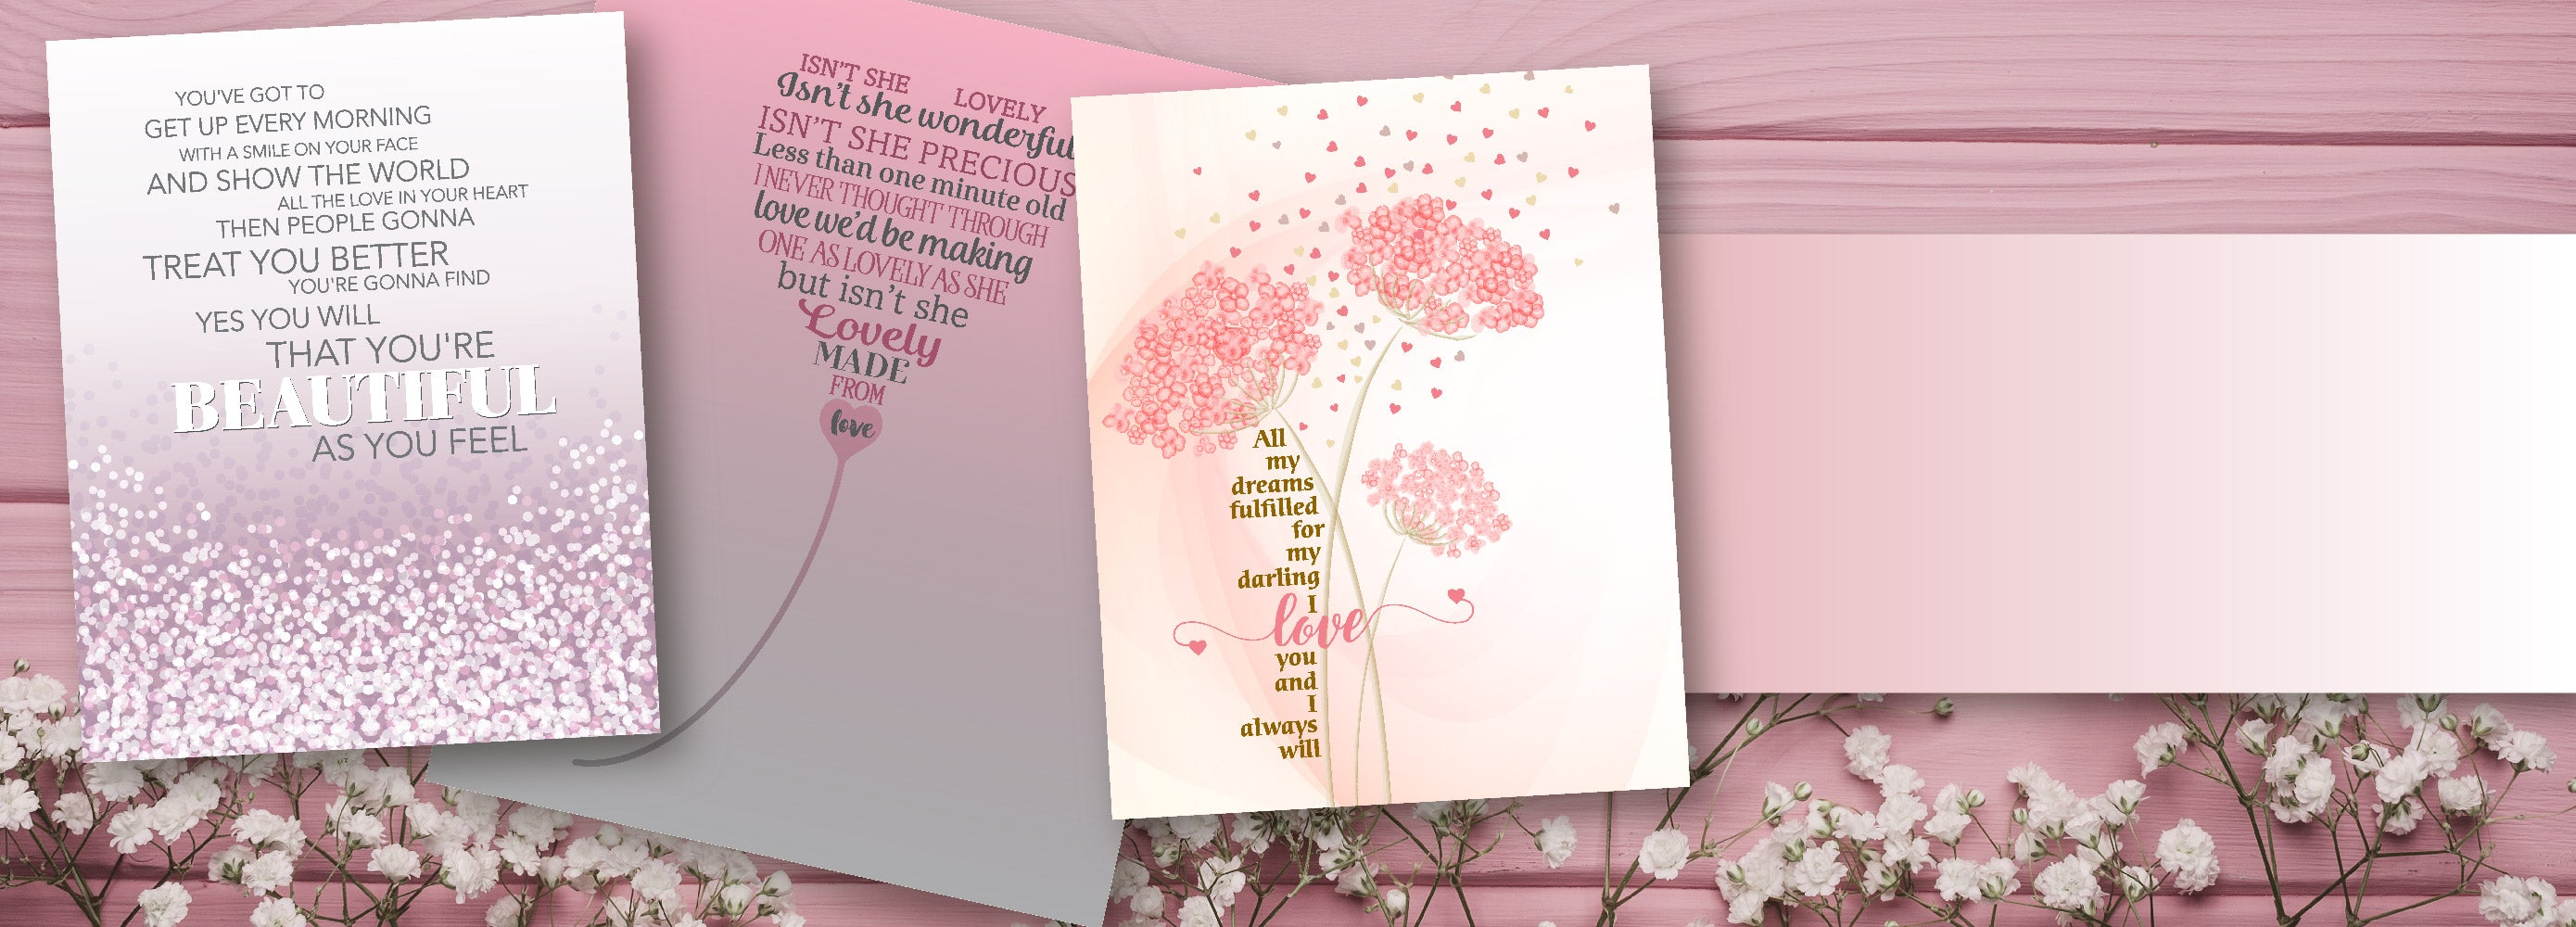 Your Wedding Song Personalized Just for You! Song Lyrics Art Prints Wall Decor for Music Enthusiasts